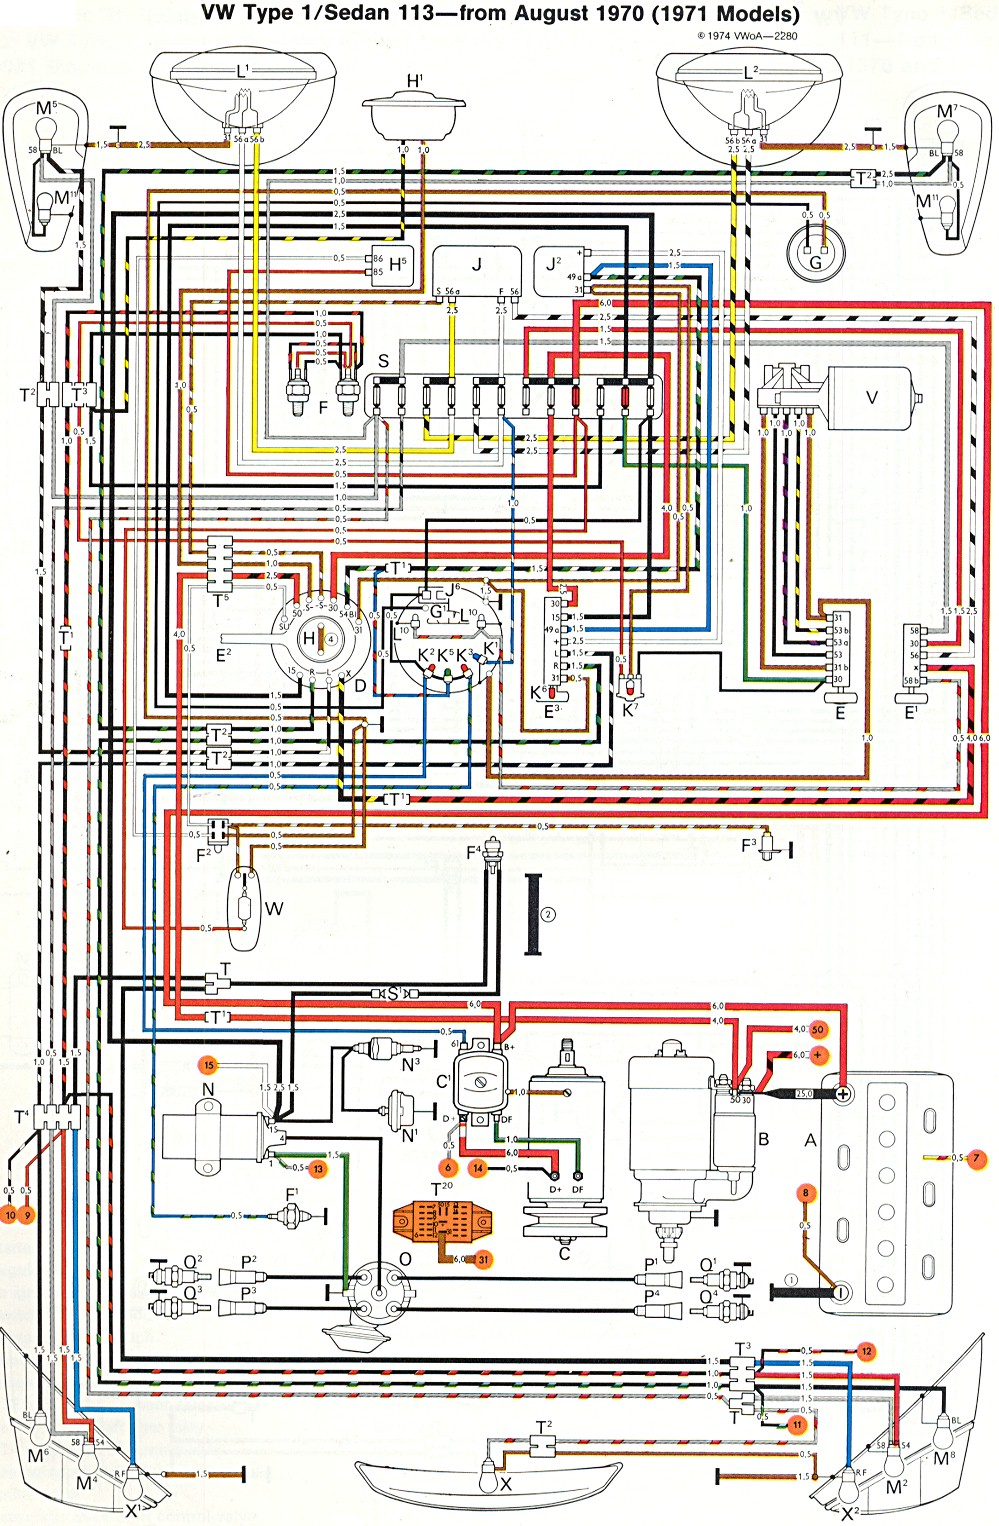 bug_super_71 1971 super beetle wiring diagram thegoldenbug com beetle wiring diagram to fix a/c fan at readyjetset.co